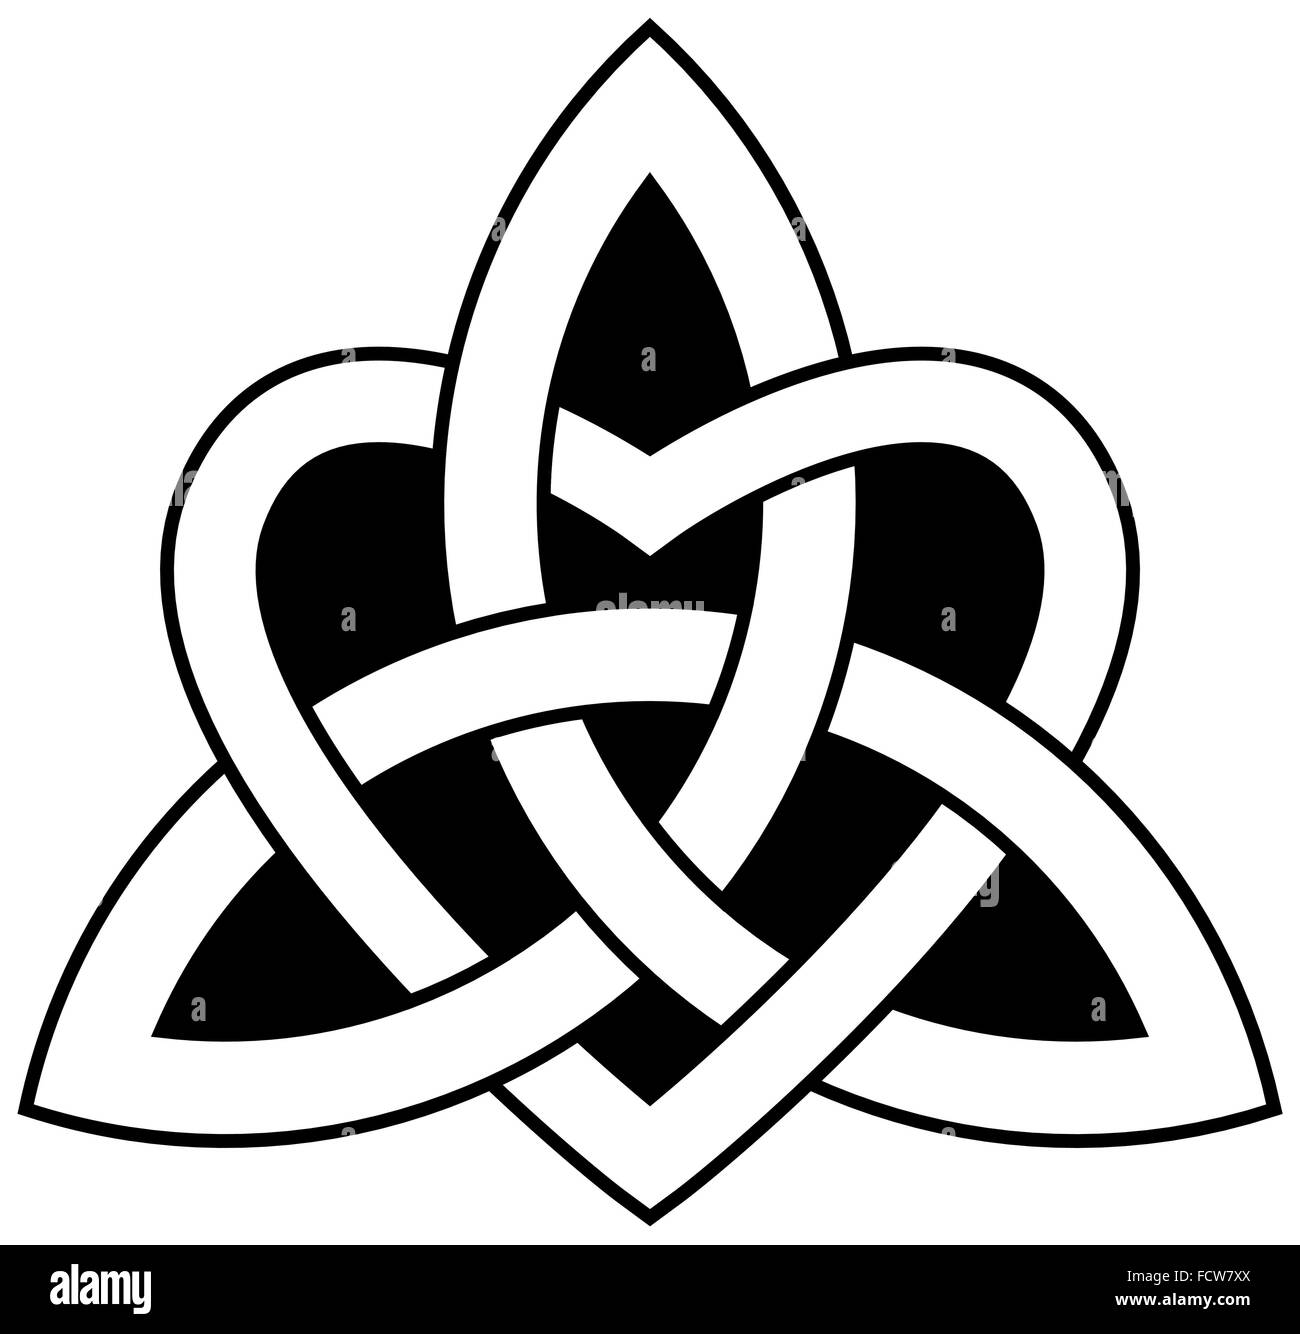 3 point celtic trinity knot triquetra interlaced with a